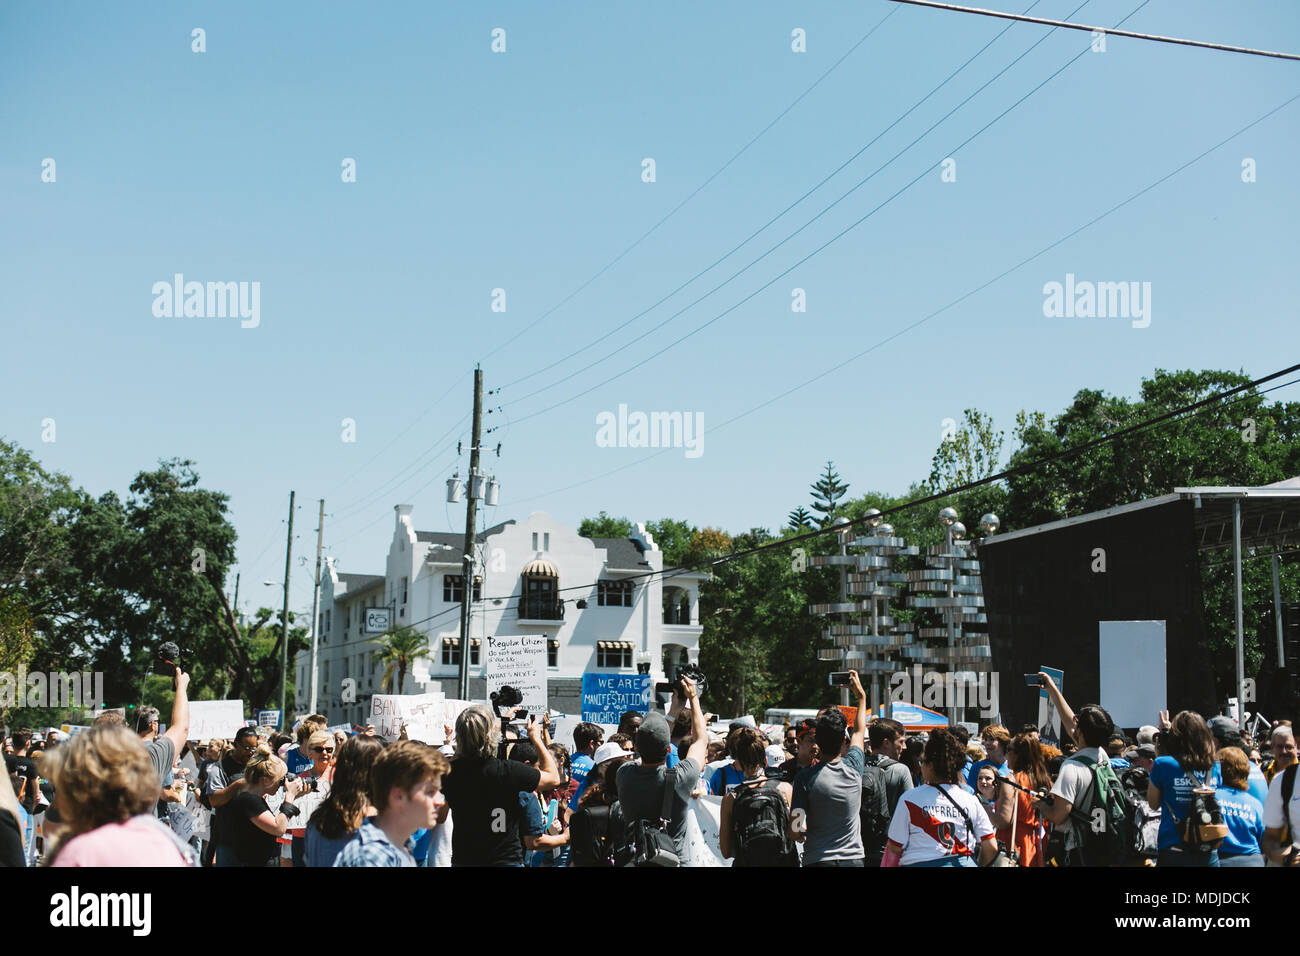 March For Our Lives Nationwide Event in Downtown Orlando, Florida (2018). - Stock Image